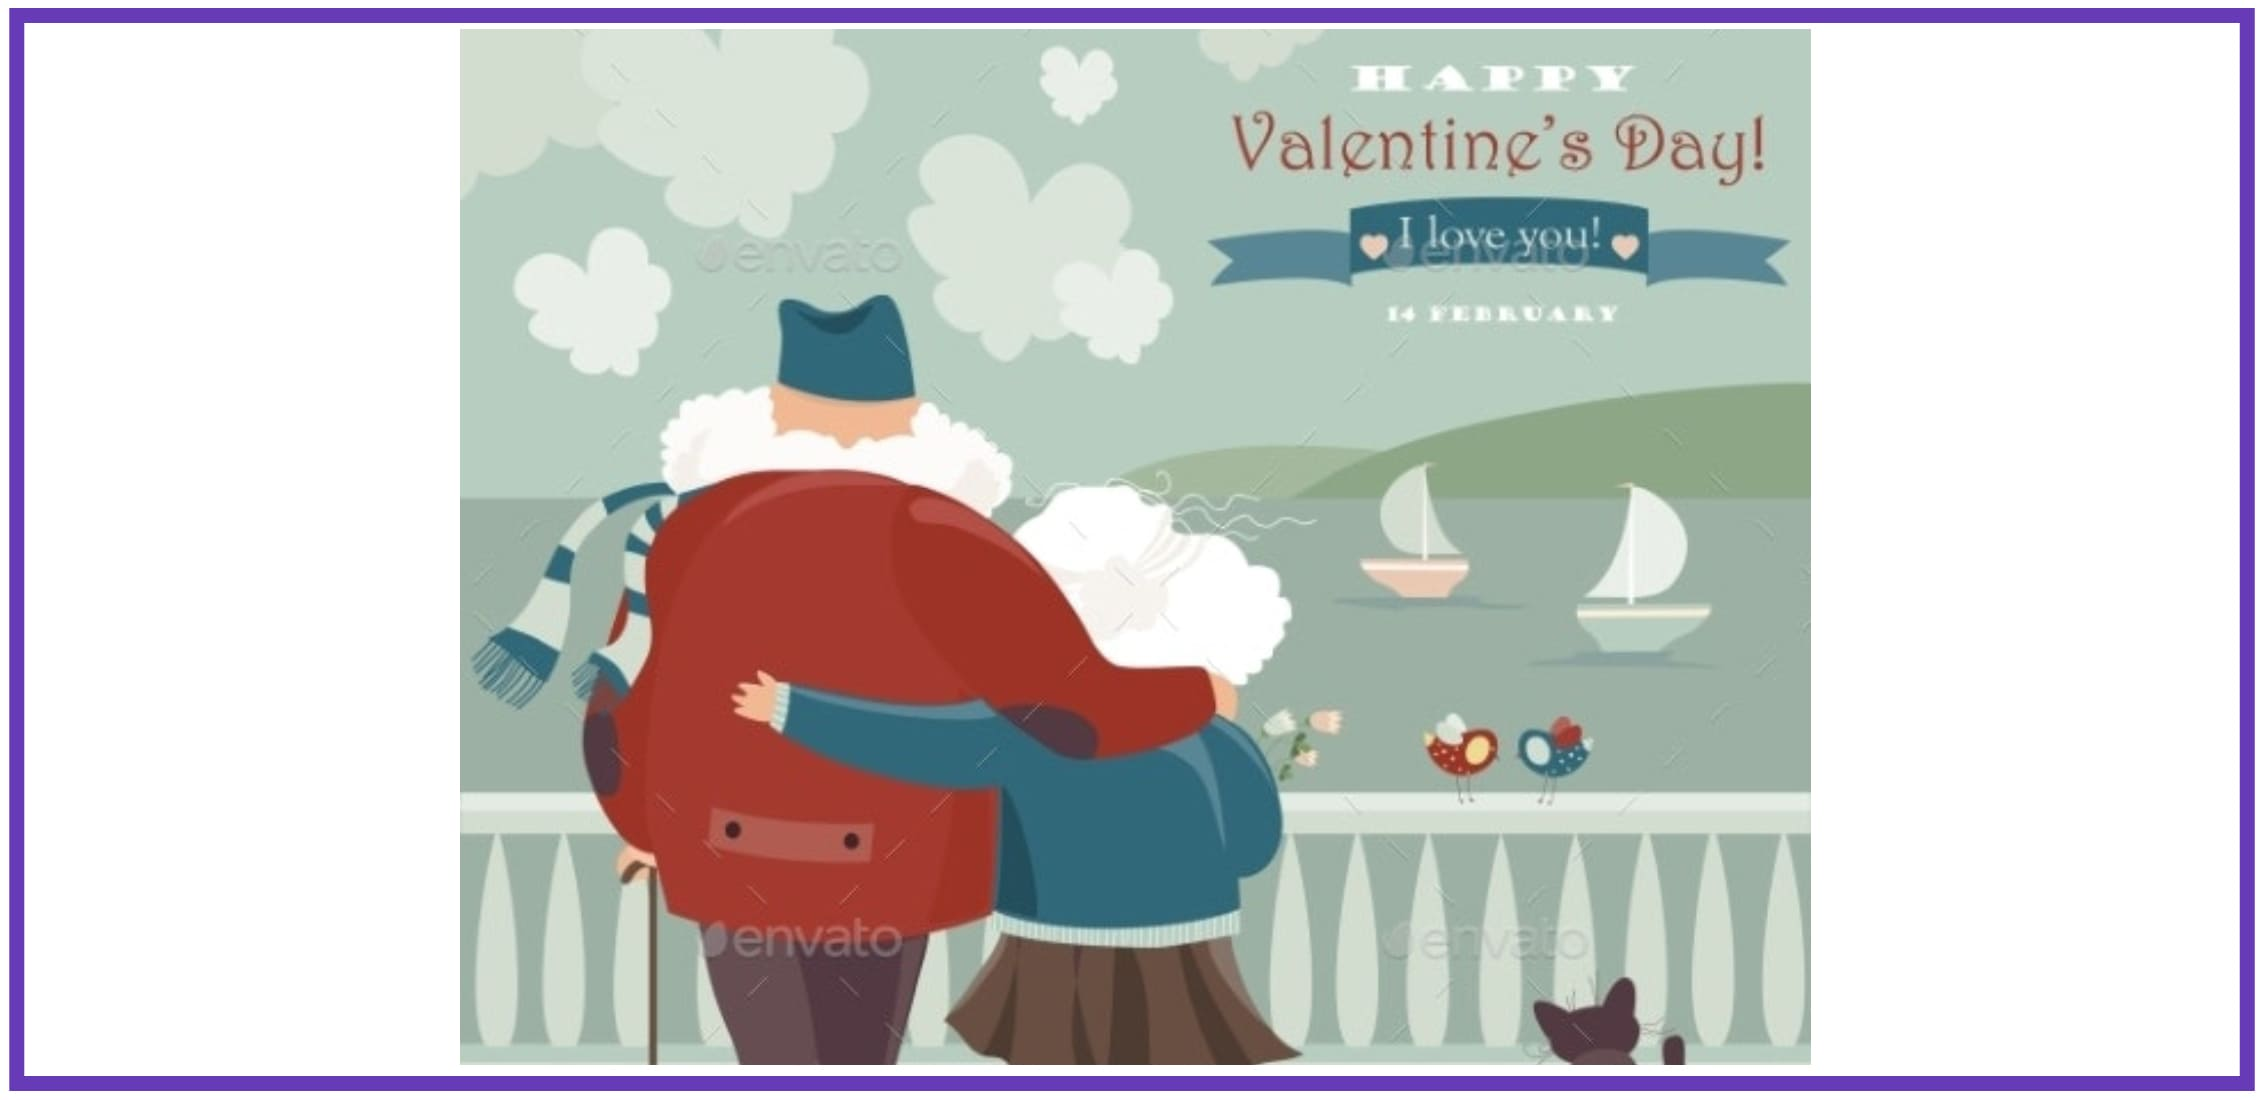 70+ Valentine's Day Cards 2021. Do not Forget about a Heartfelt Card for Your Valentine - valentines day card 48